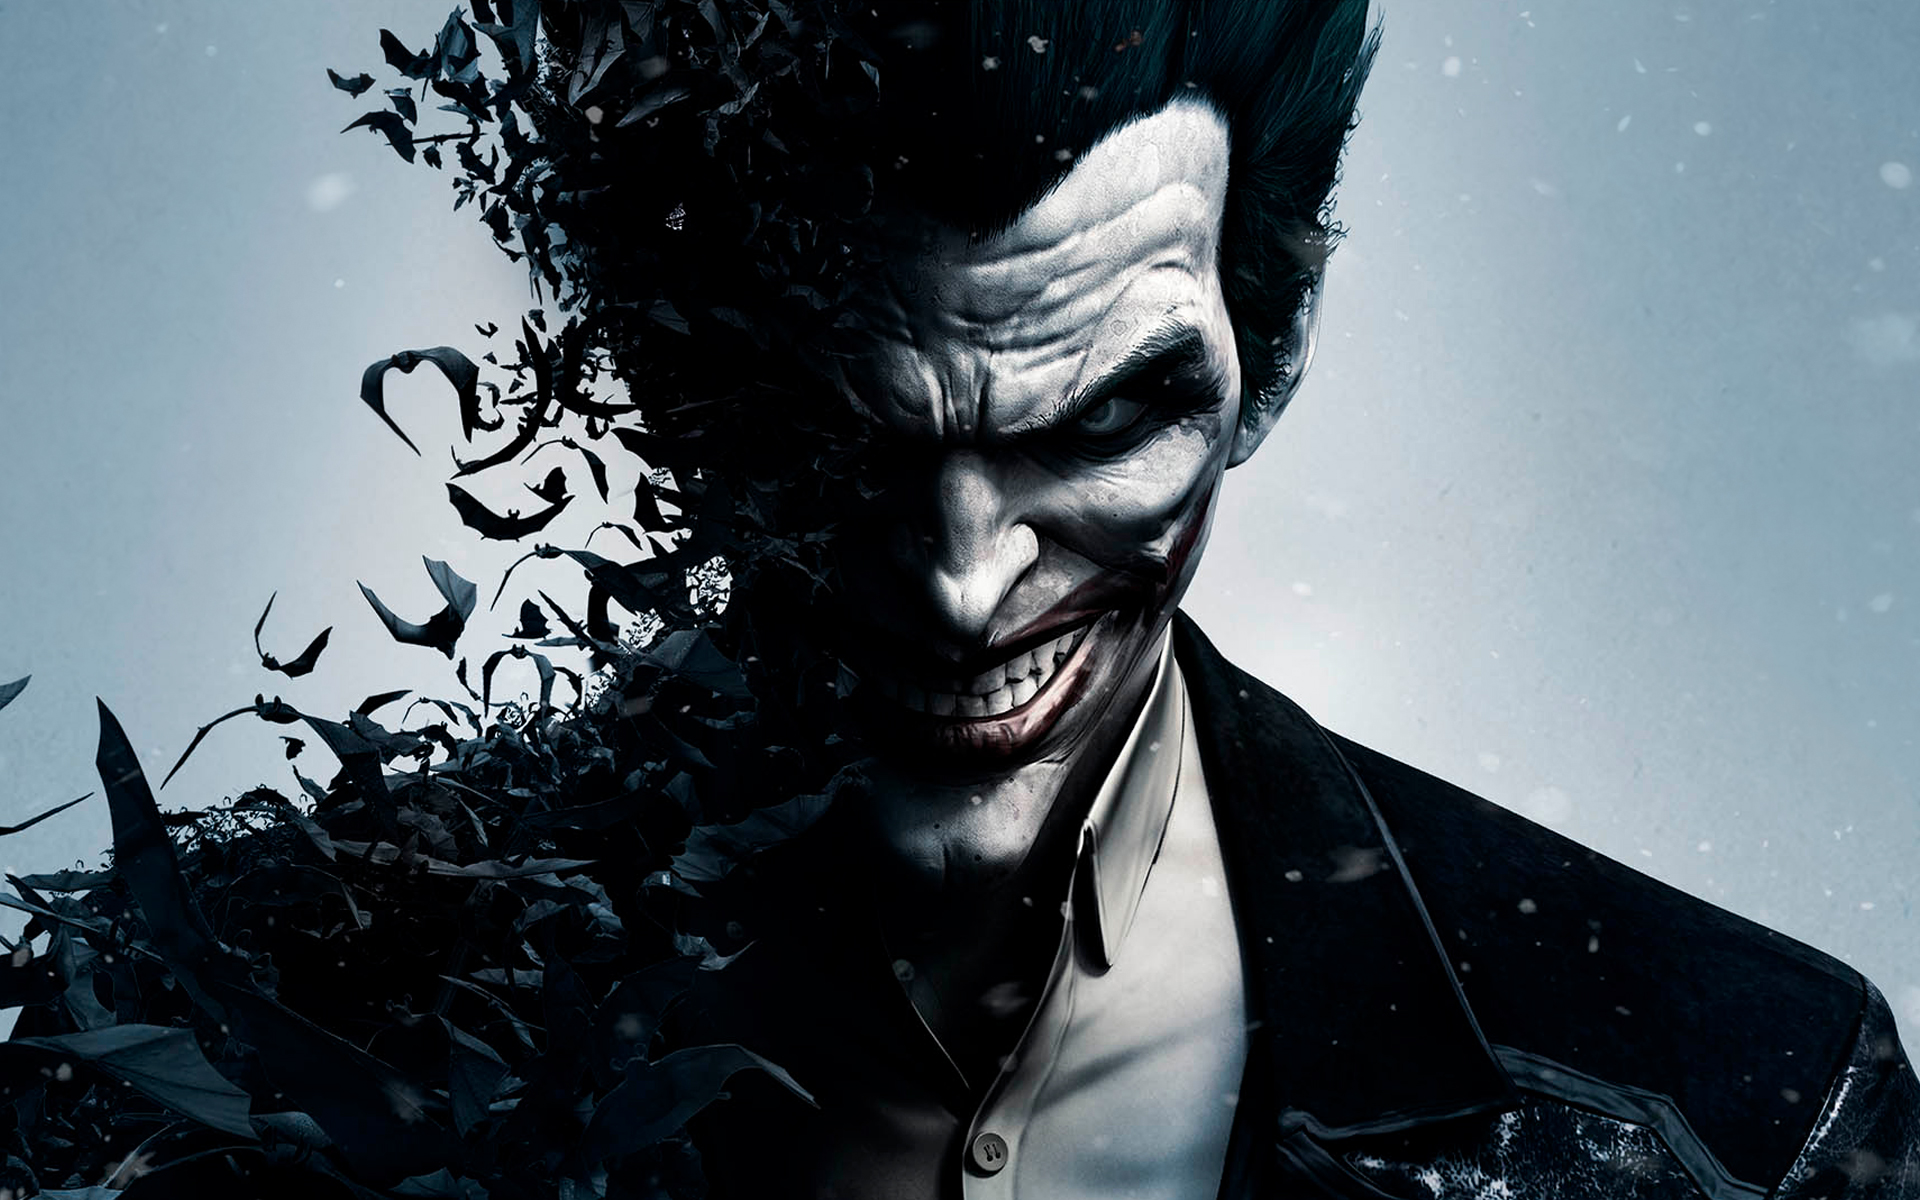 Amazing-joker-hd-1080p-For-Desktop-with-joker-hd-1080p-Download-H-wallpaper-wpc9002164